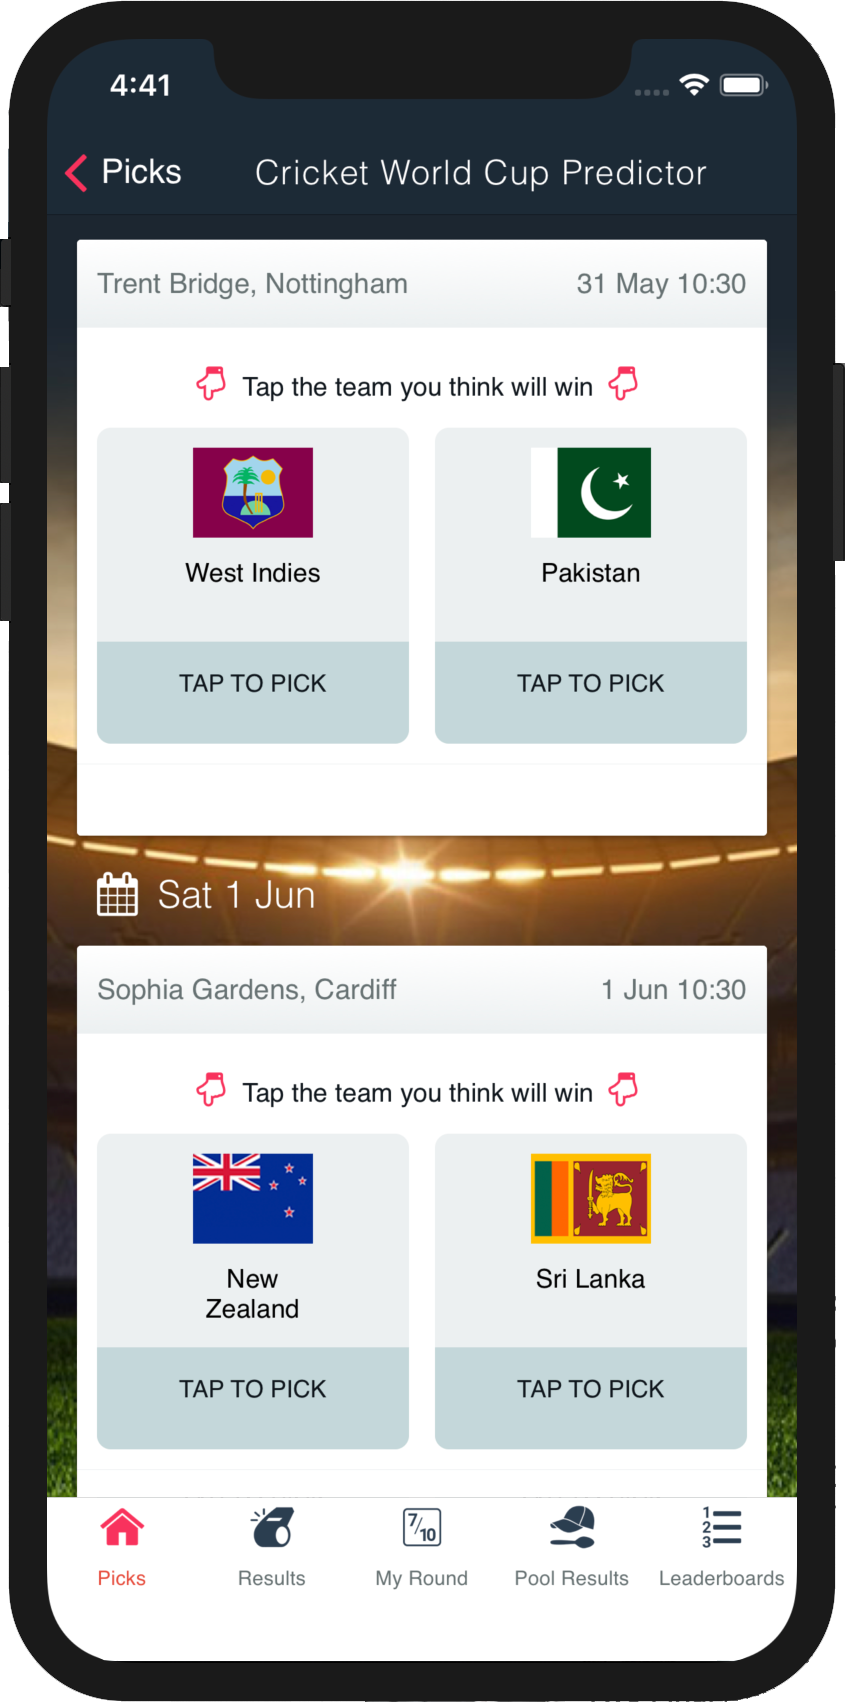 Superbru - Cricket World Cup 2019 Predictor Game